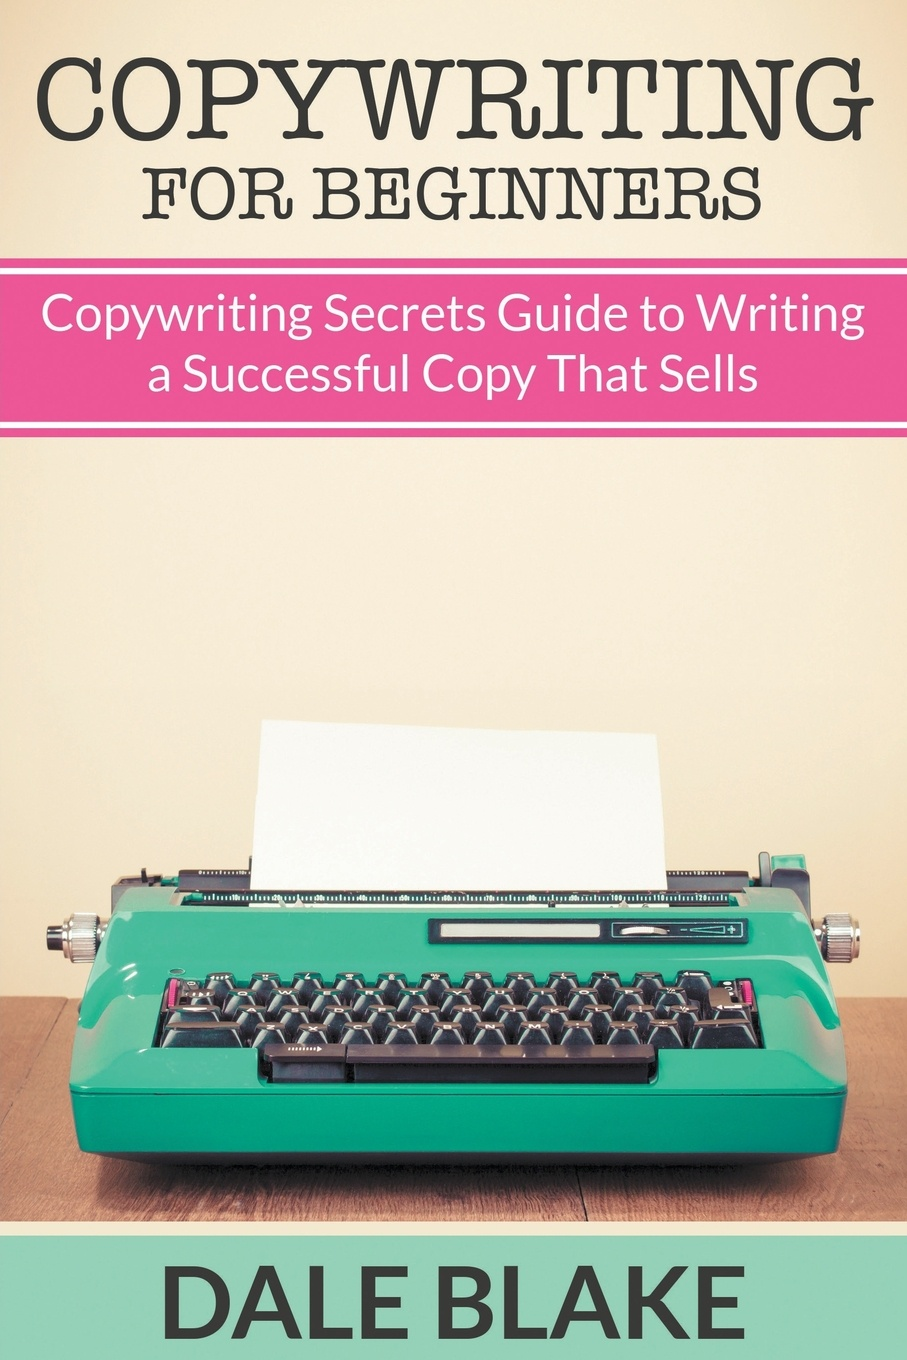 Copywriting For Beginners. Copywriting Secrets Guide to Writing a Successful Copy That Sells